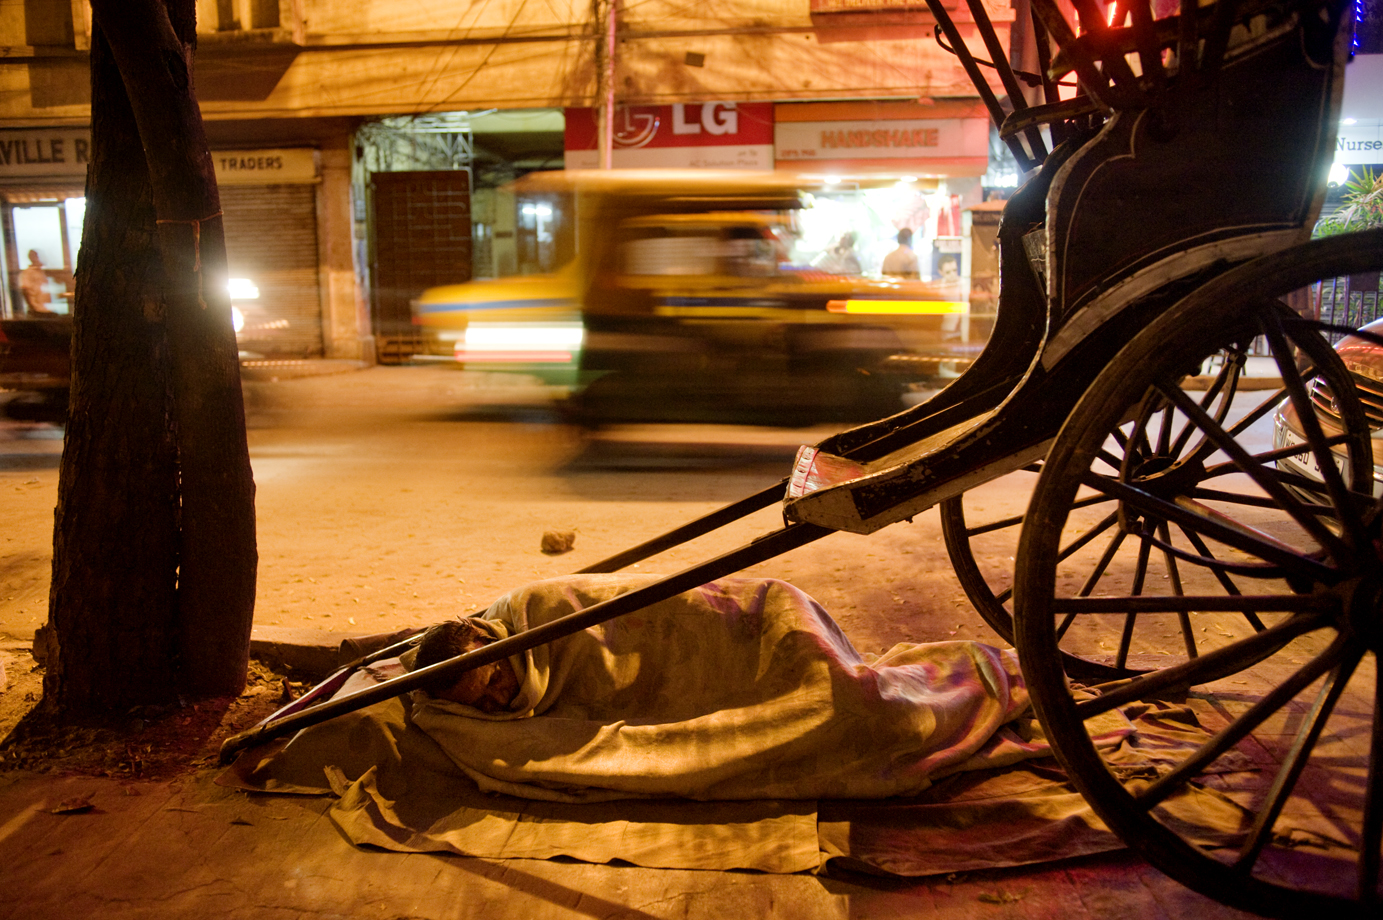 Rickshaw puller sleeping at the street, Calcutta / India